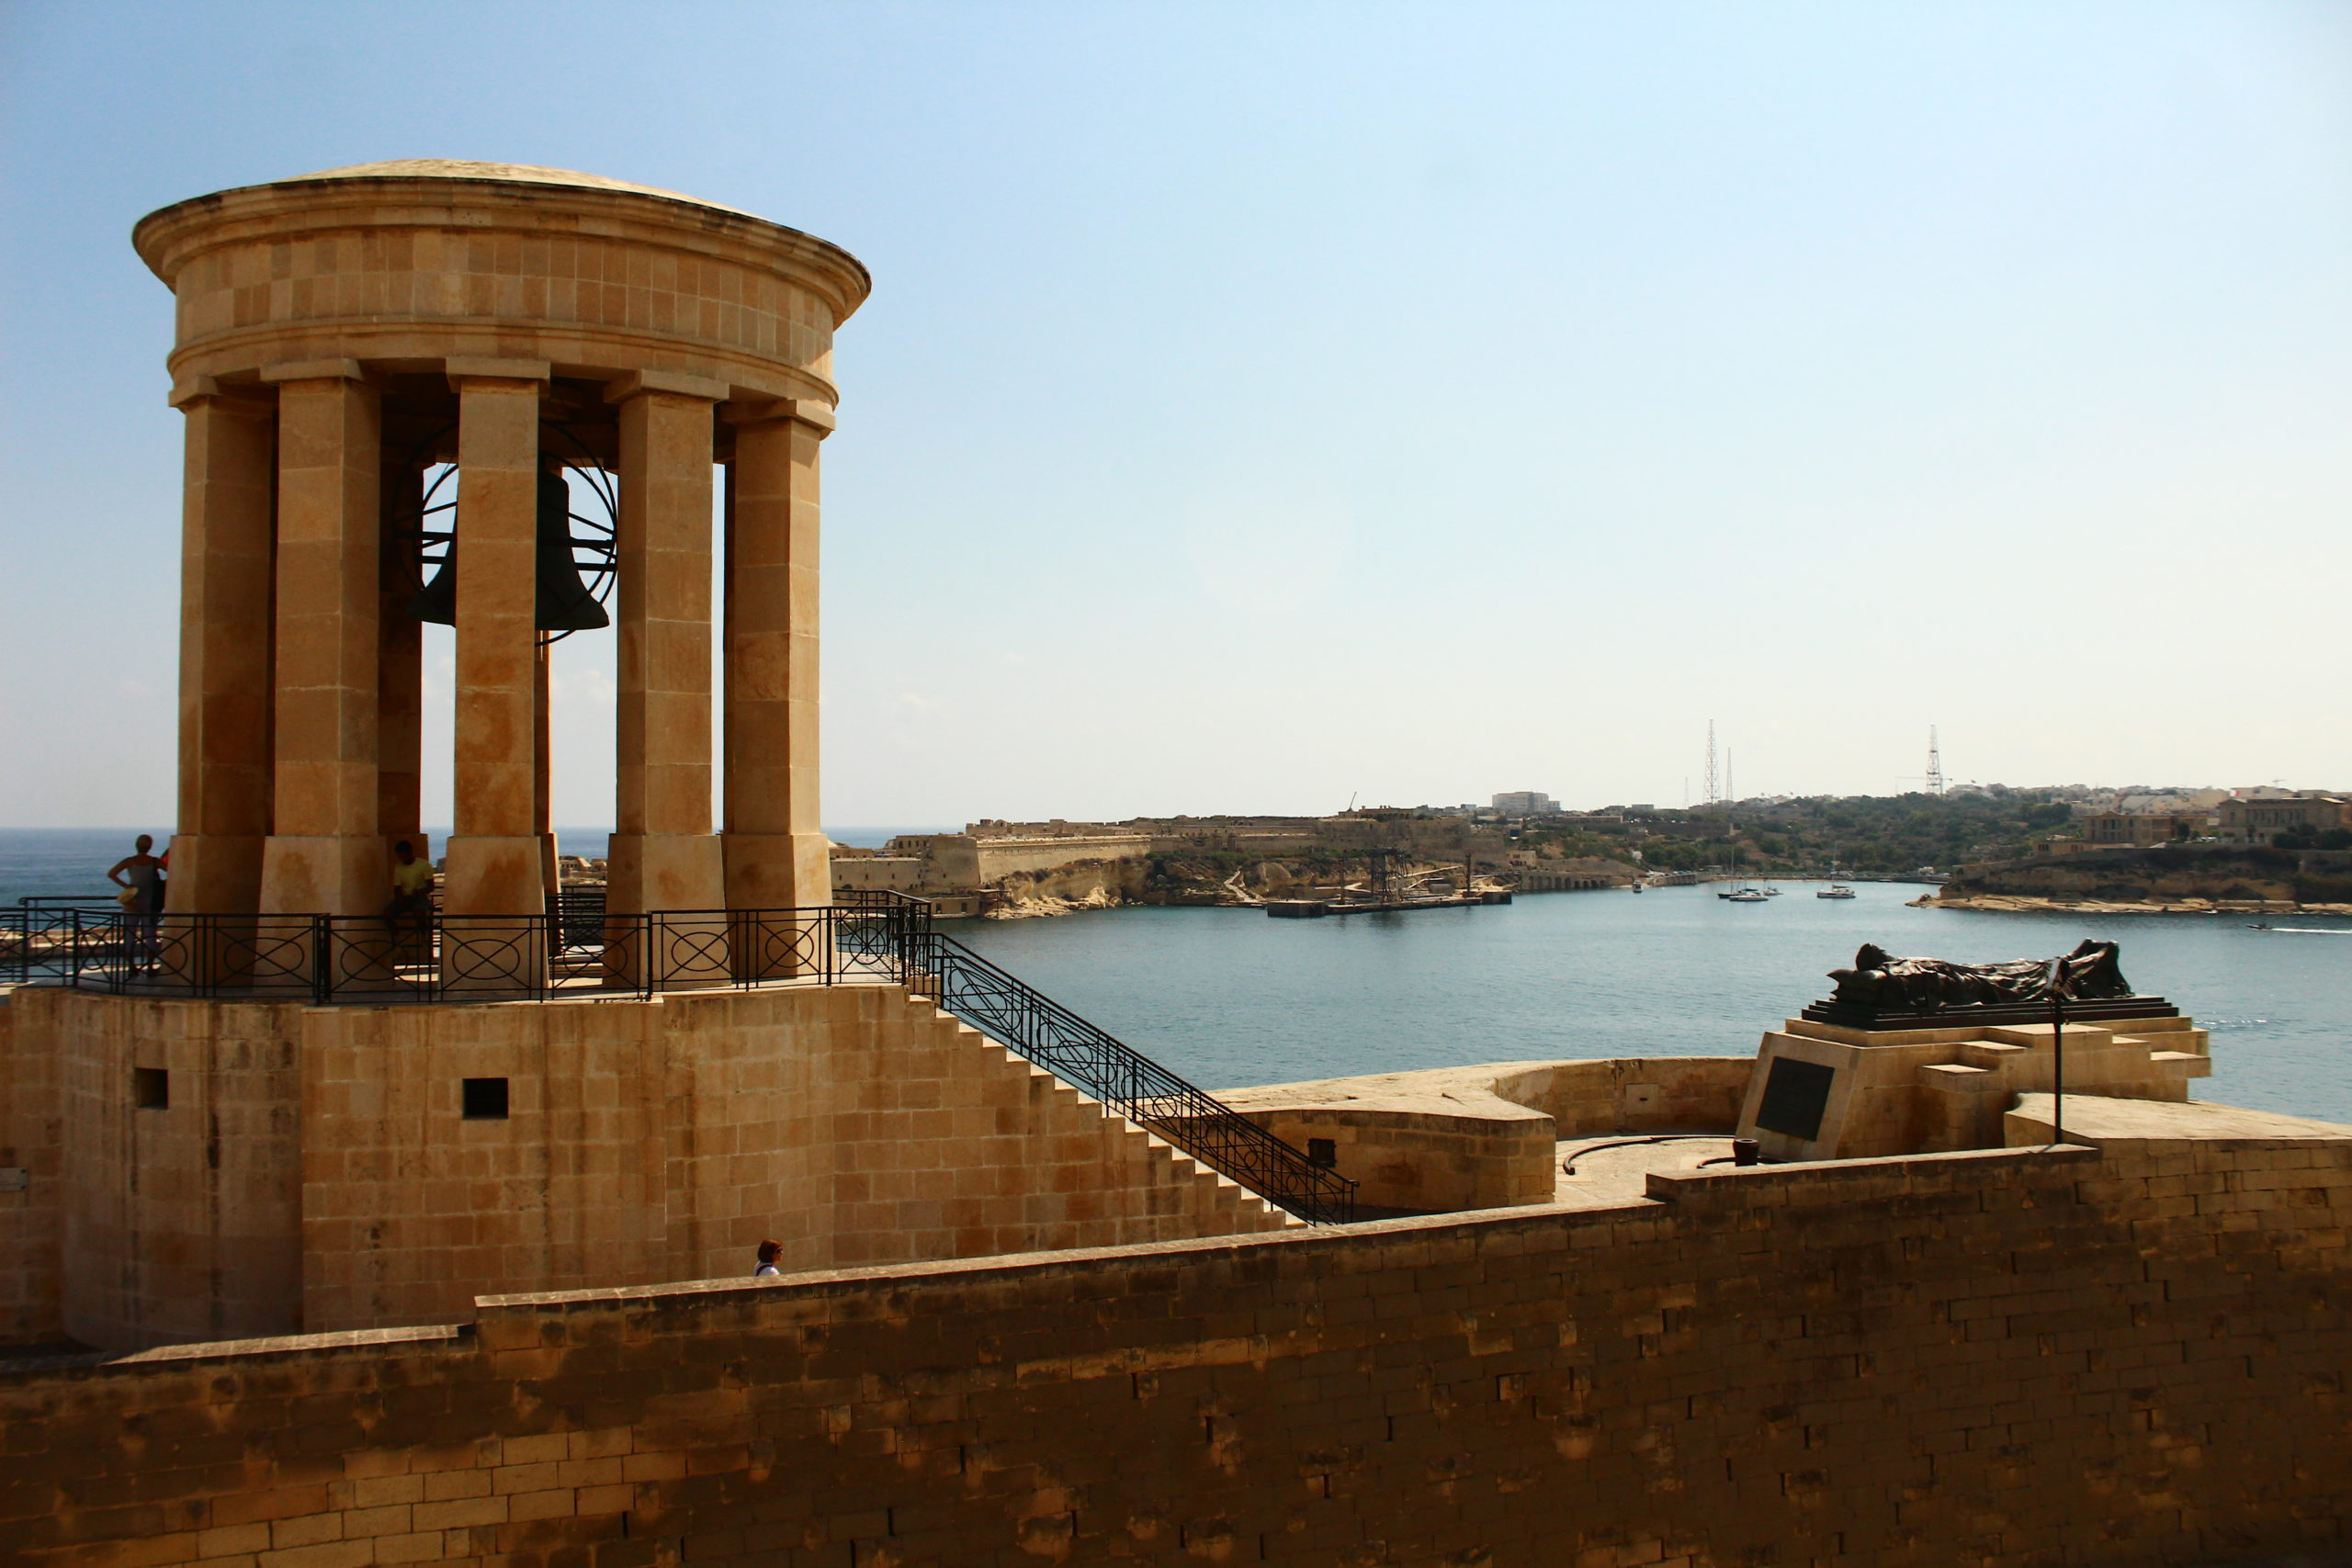 The Siege Bell War Memorial in Valletta